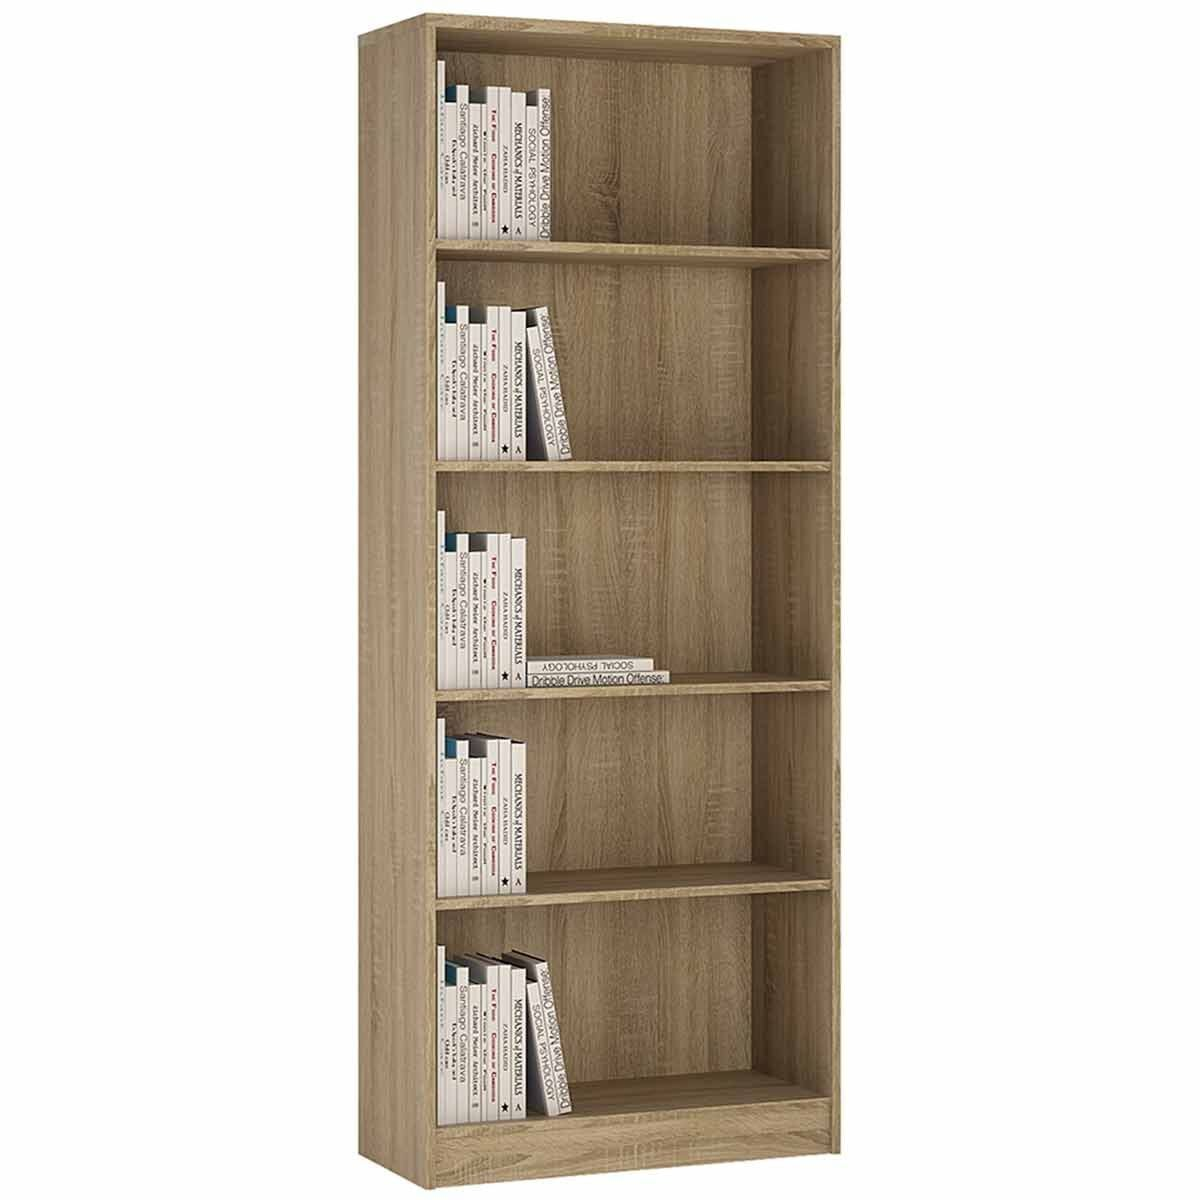 4 You Tall Wide Bookcase